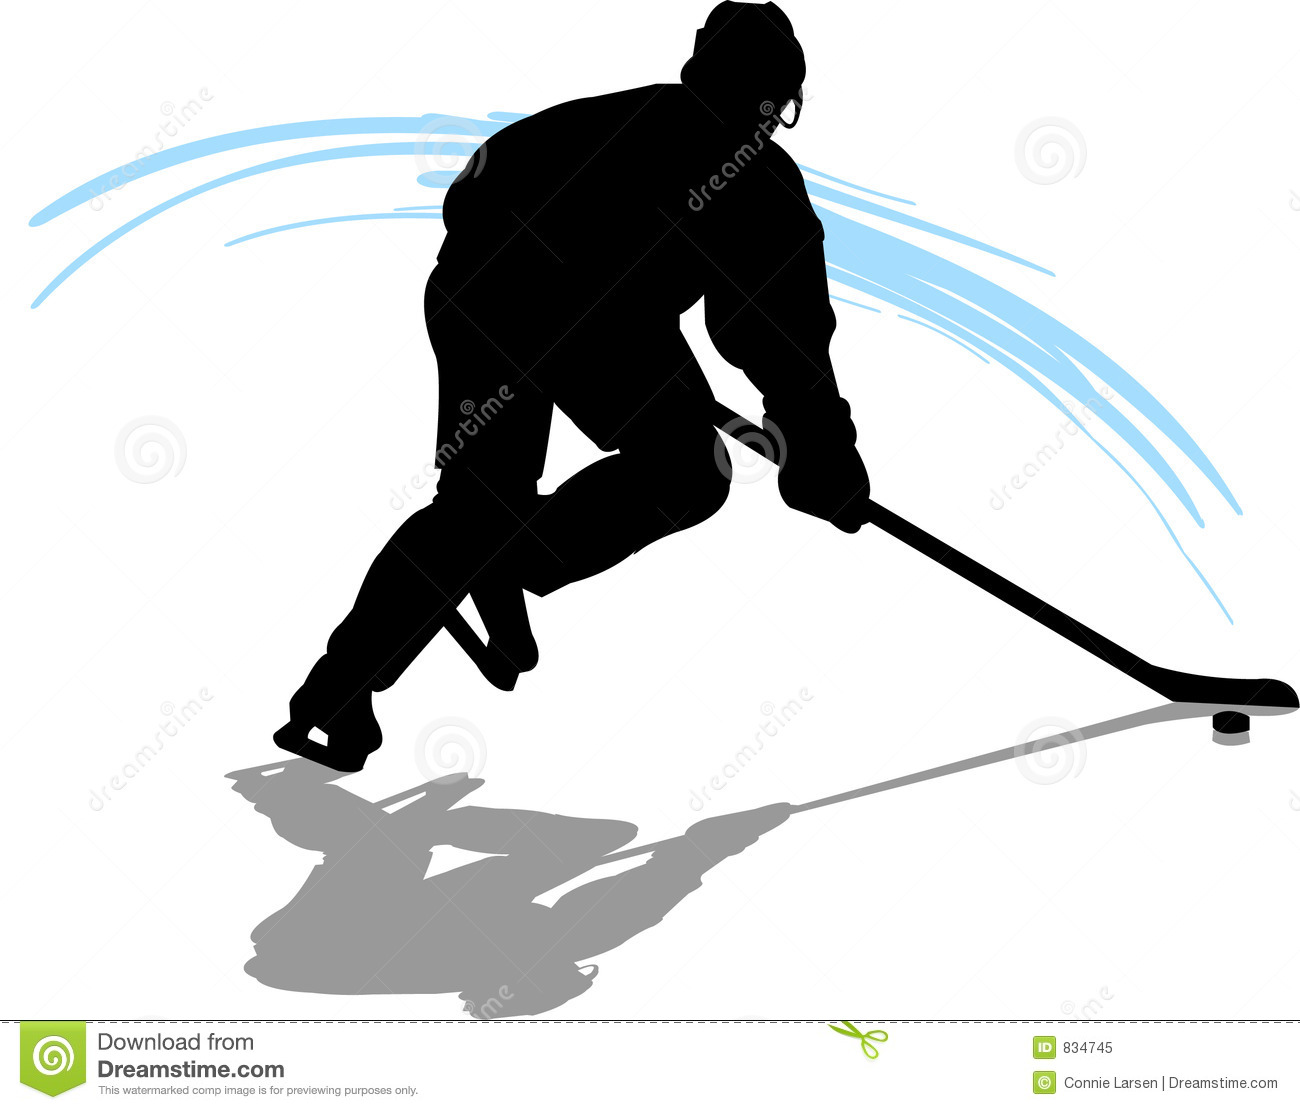 Hockey Player Royalty Free Stock Photo - Image: 834745